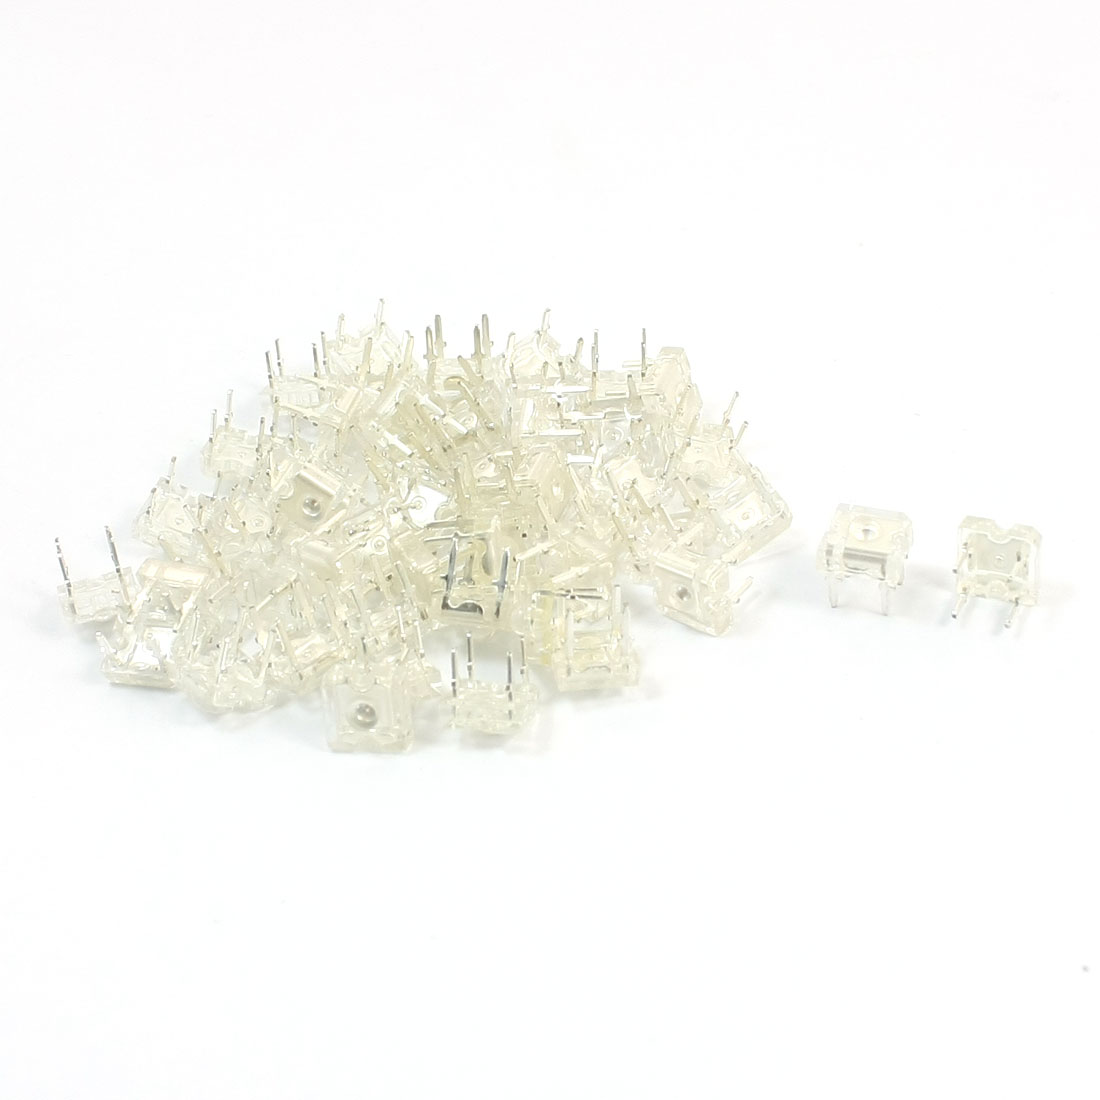 50 Pcs DC1.8-2.0V 3mm Dia 4 Pins Yellow Light Lamp Piranha LED Emitting Diodes